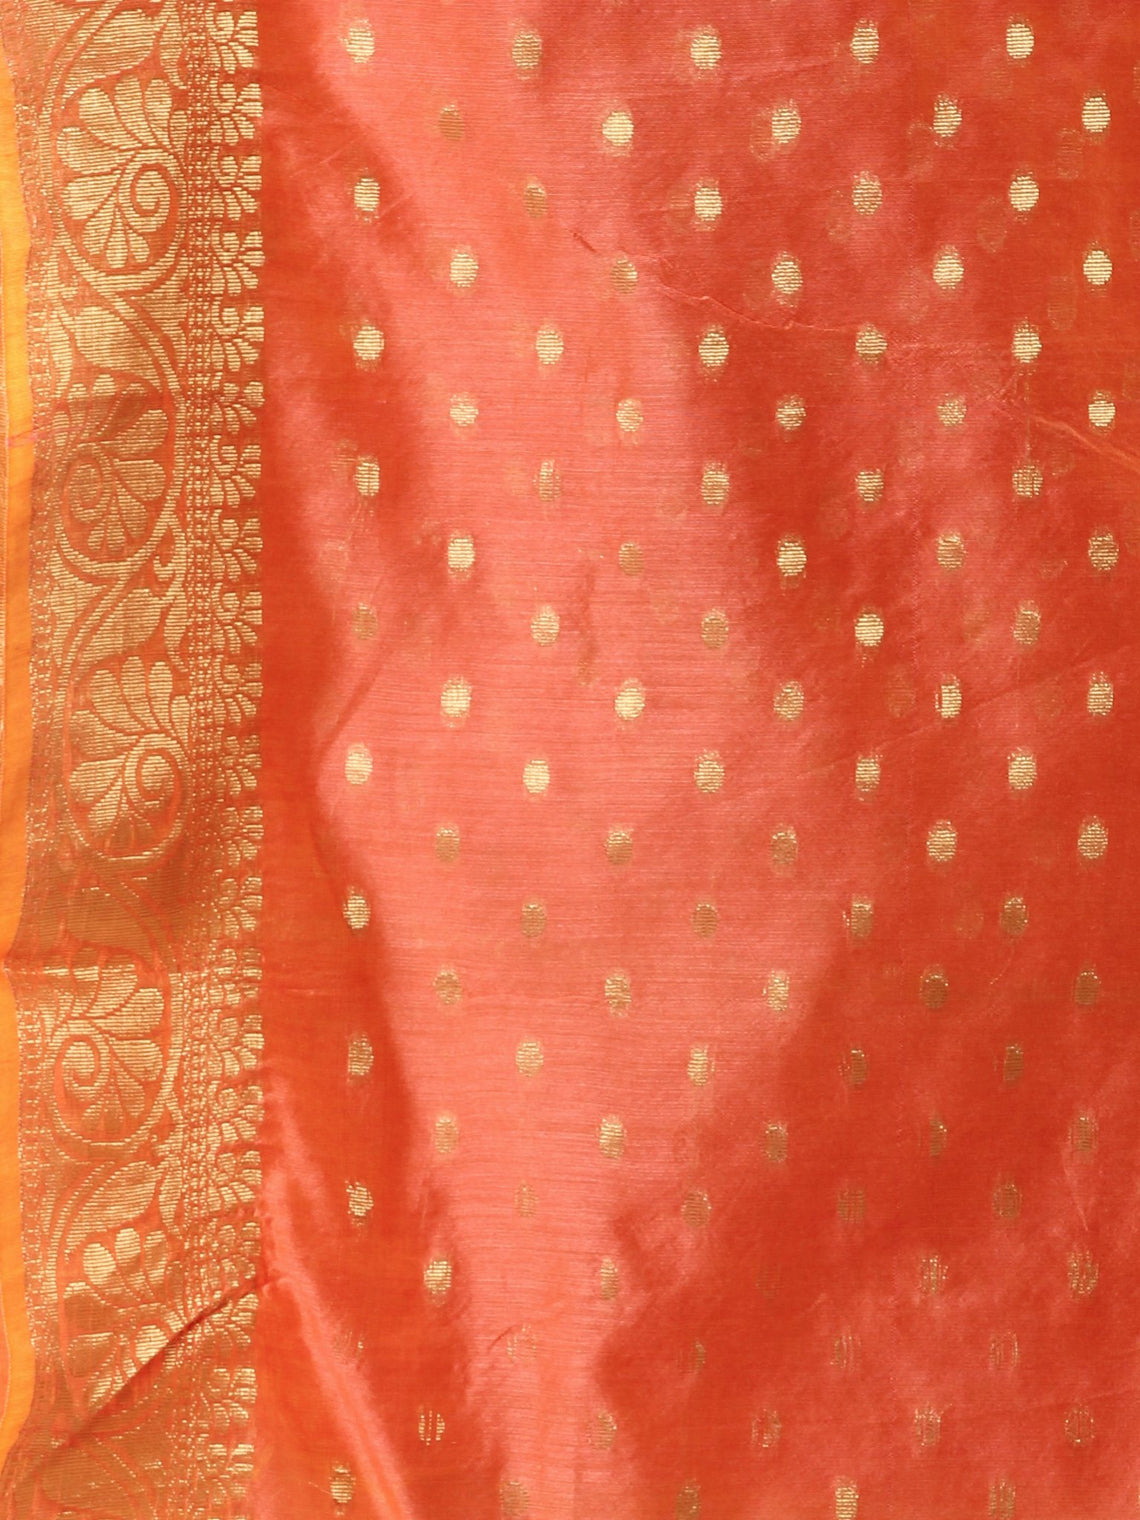 Banarasi Chanderi Dupatta With Zari Work - Peach & Gold - D04170808